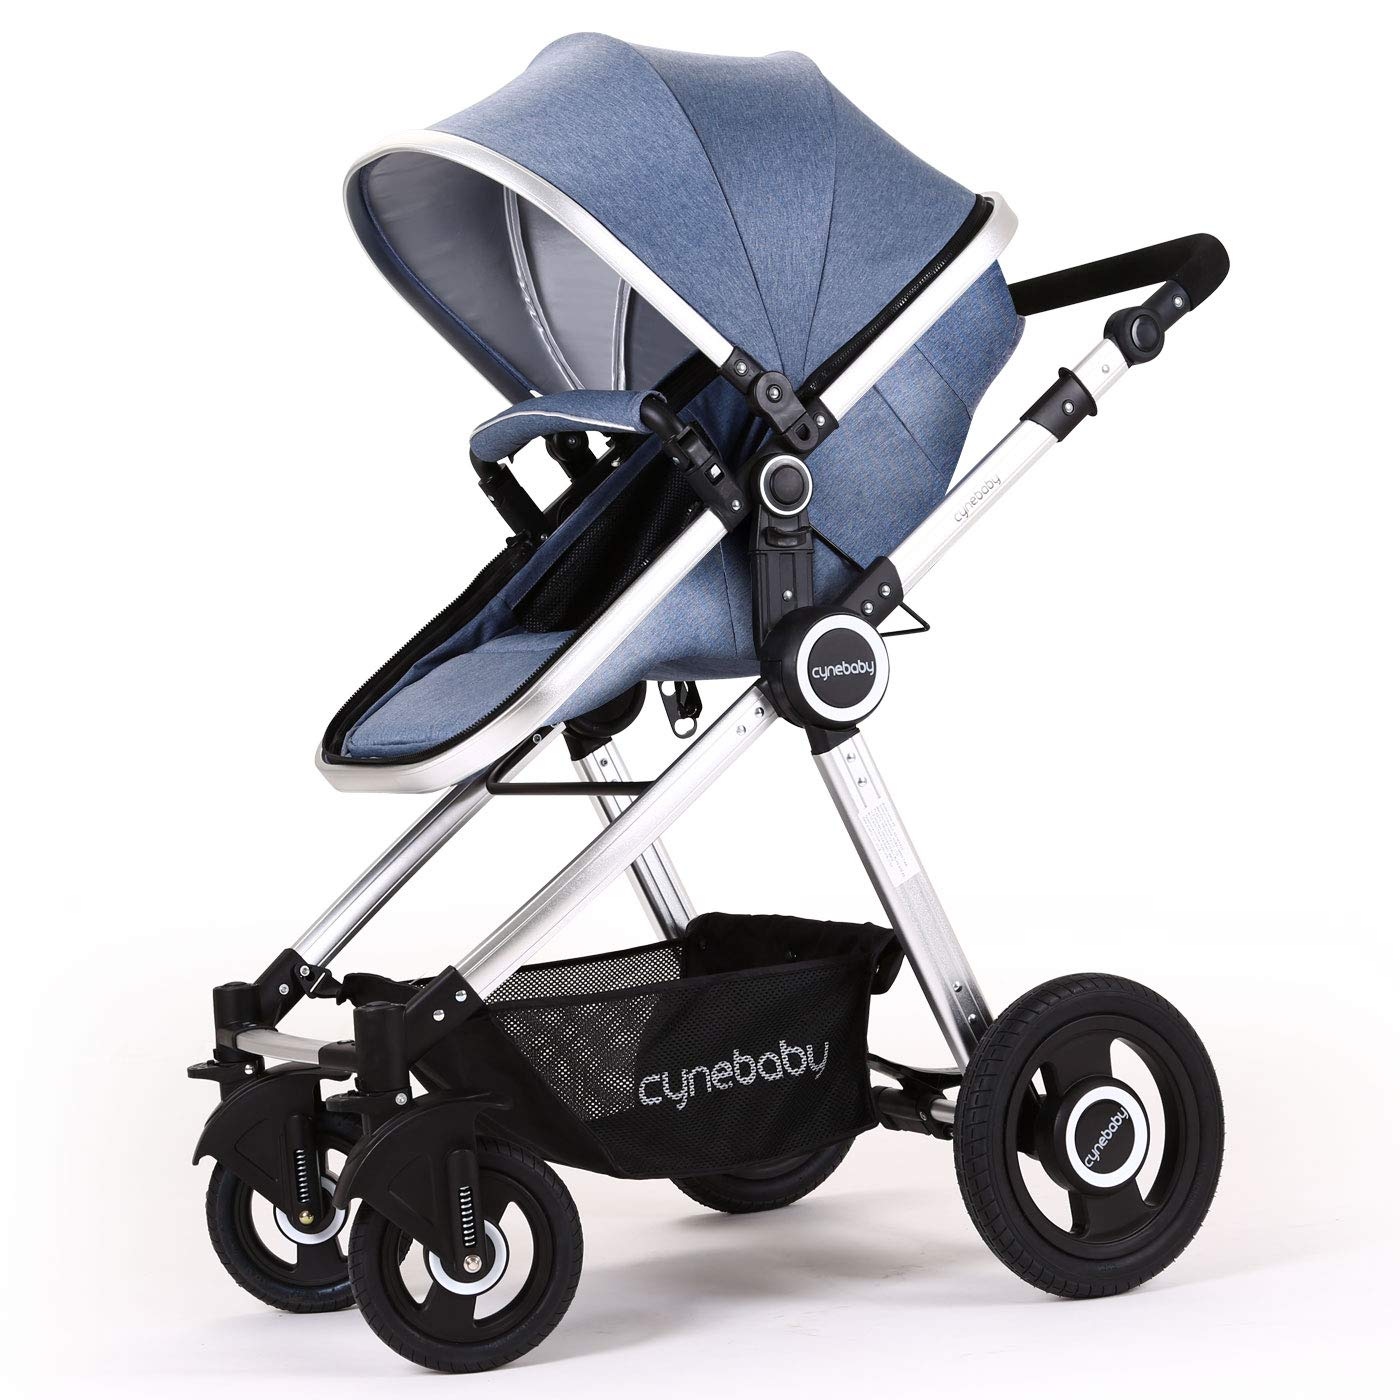 Baby Stroller Bassinet Pram Carriage Stroller - Cynebaby All Terrain Vista City Select Pushchair Stroller Compact Convertible Luxury Strollers add Foot Cover (Mature Blue) by cynebaby